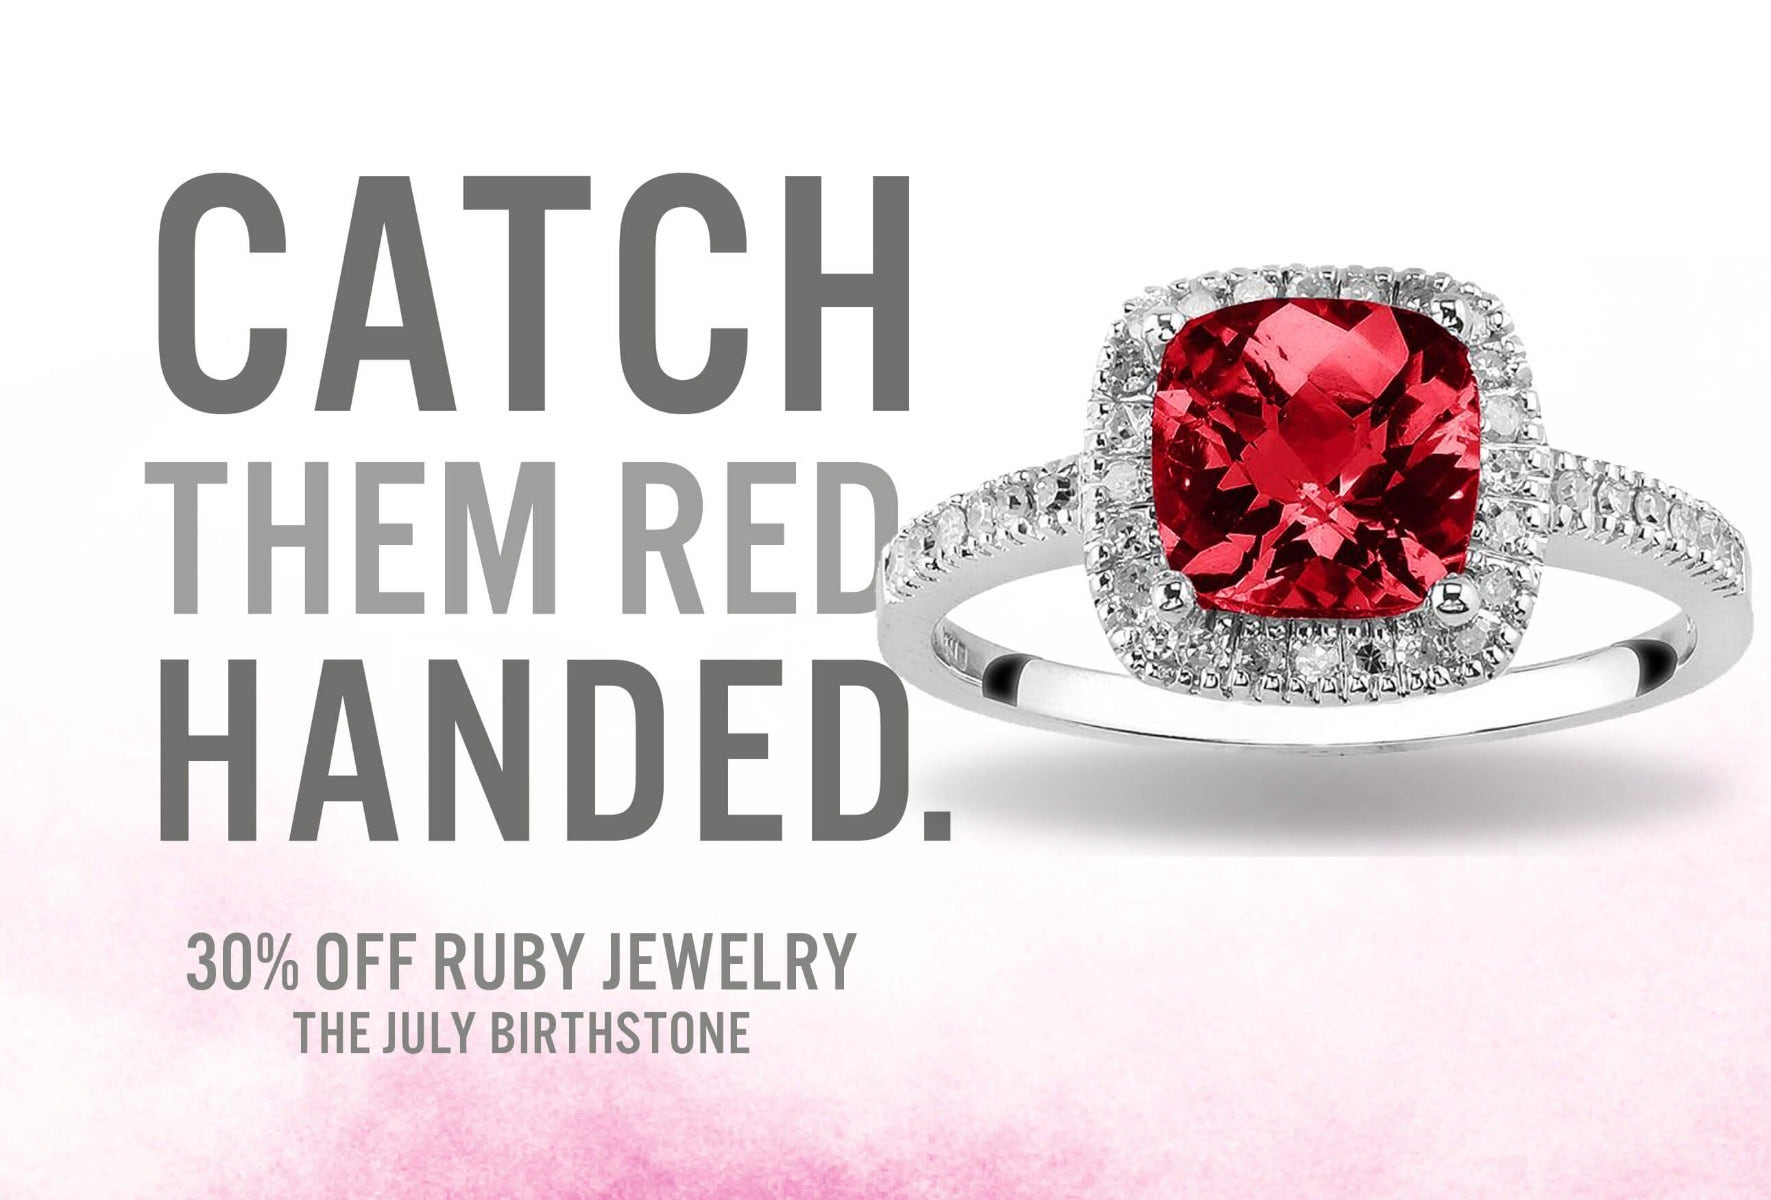 Shop All Ruby Jewelry